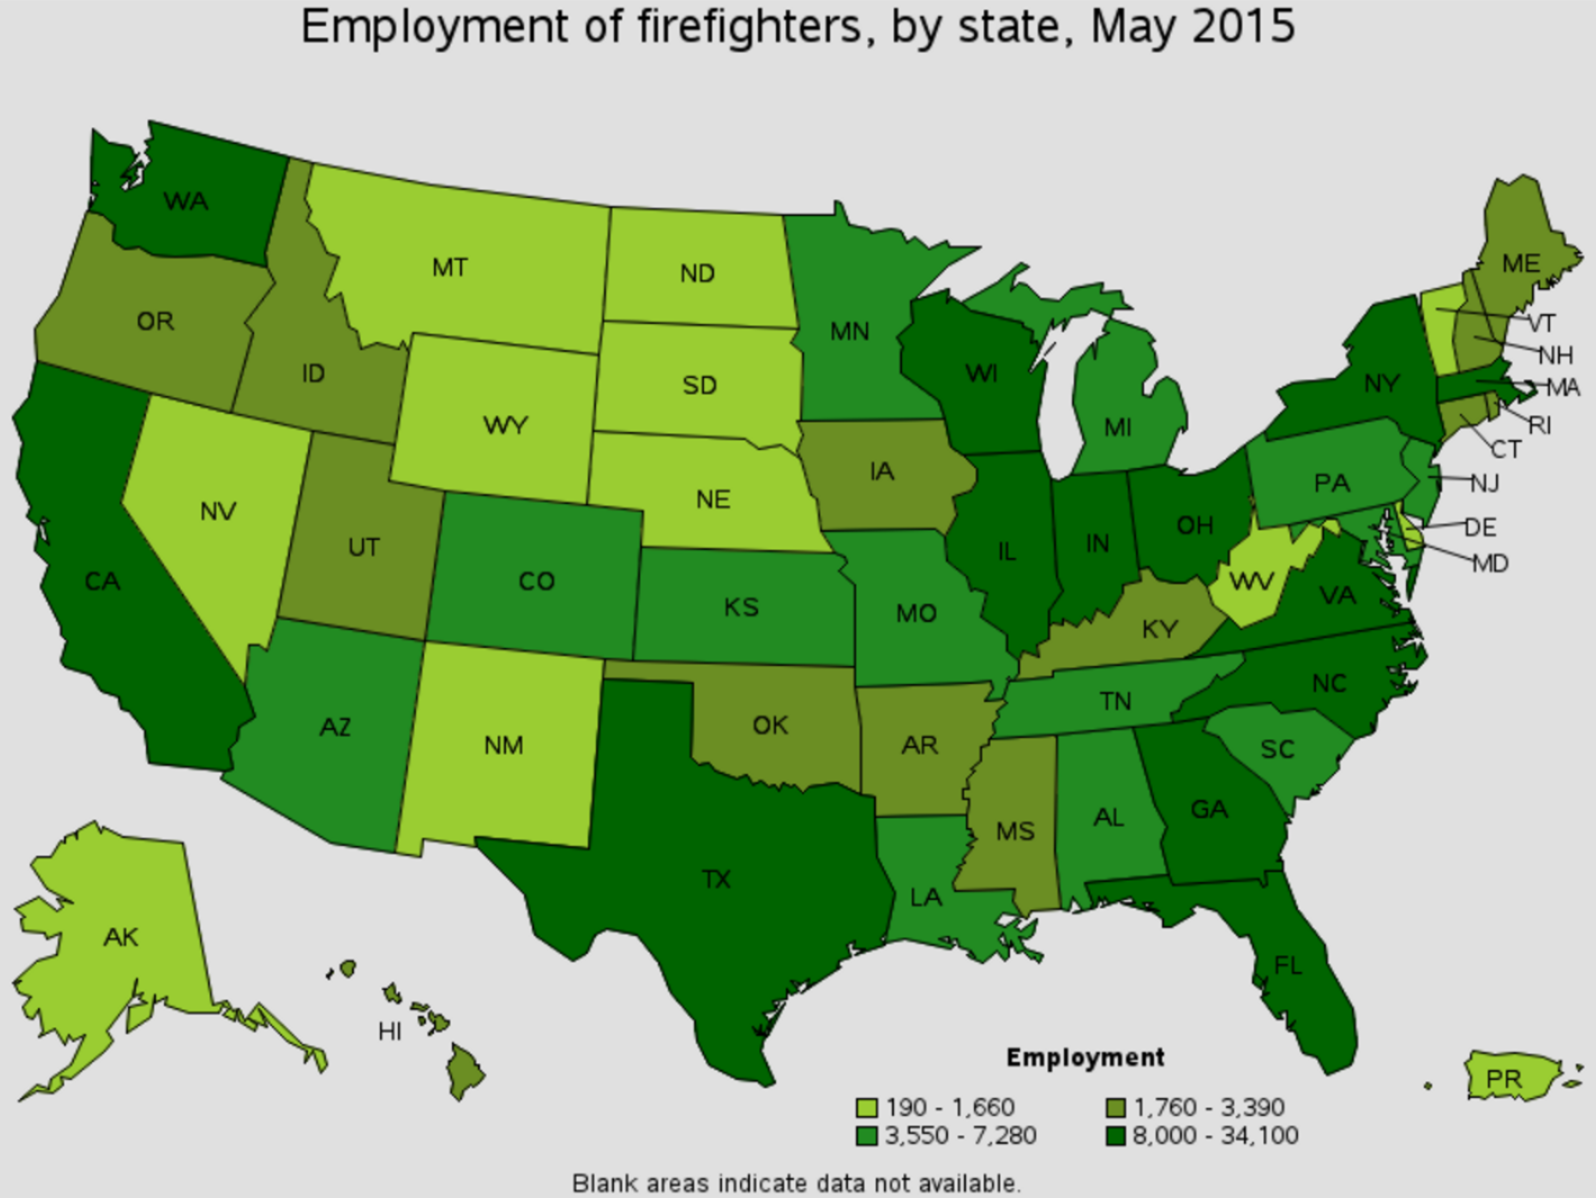 firefighter job outlook by state Middletown Springs Vermont